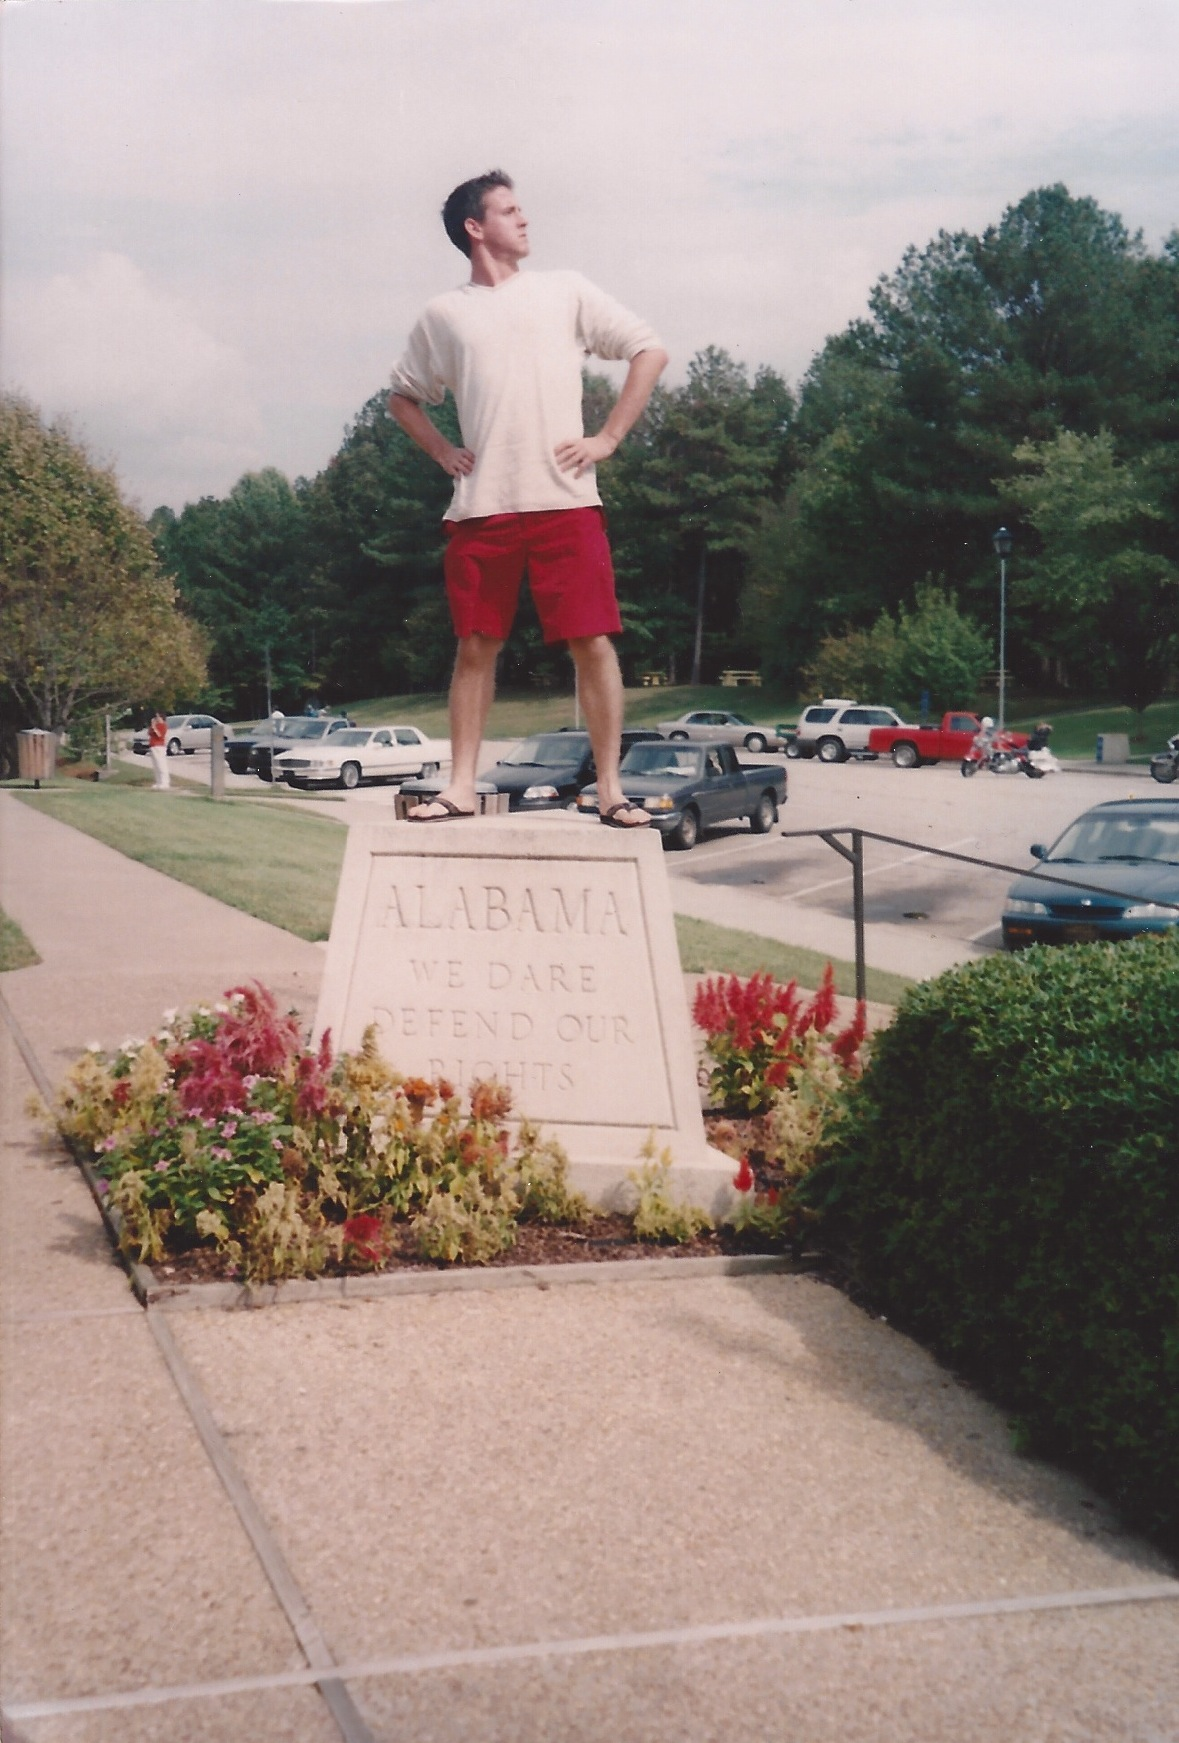 At the Alabama state line welcome center. Jason was showing a posture of defense.